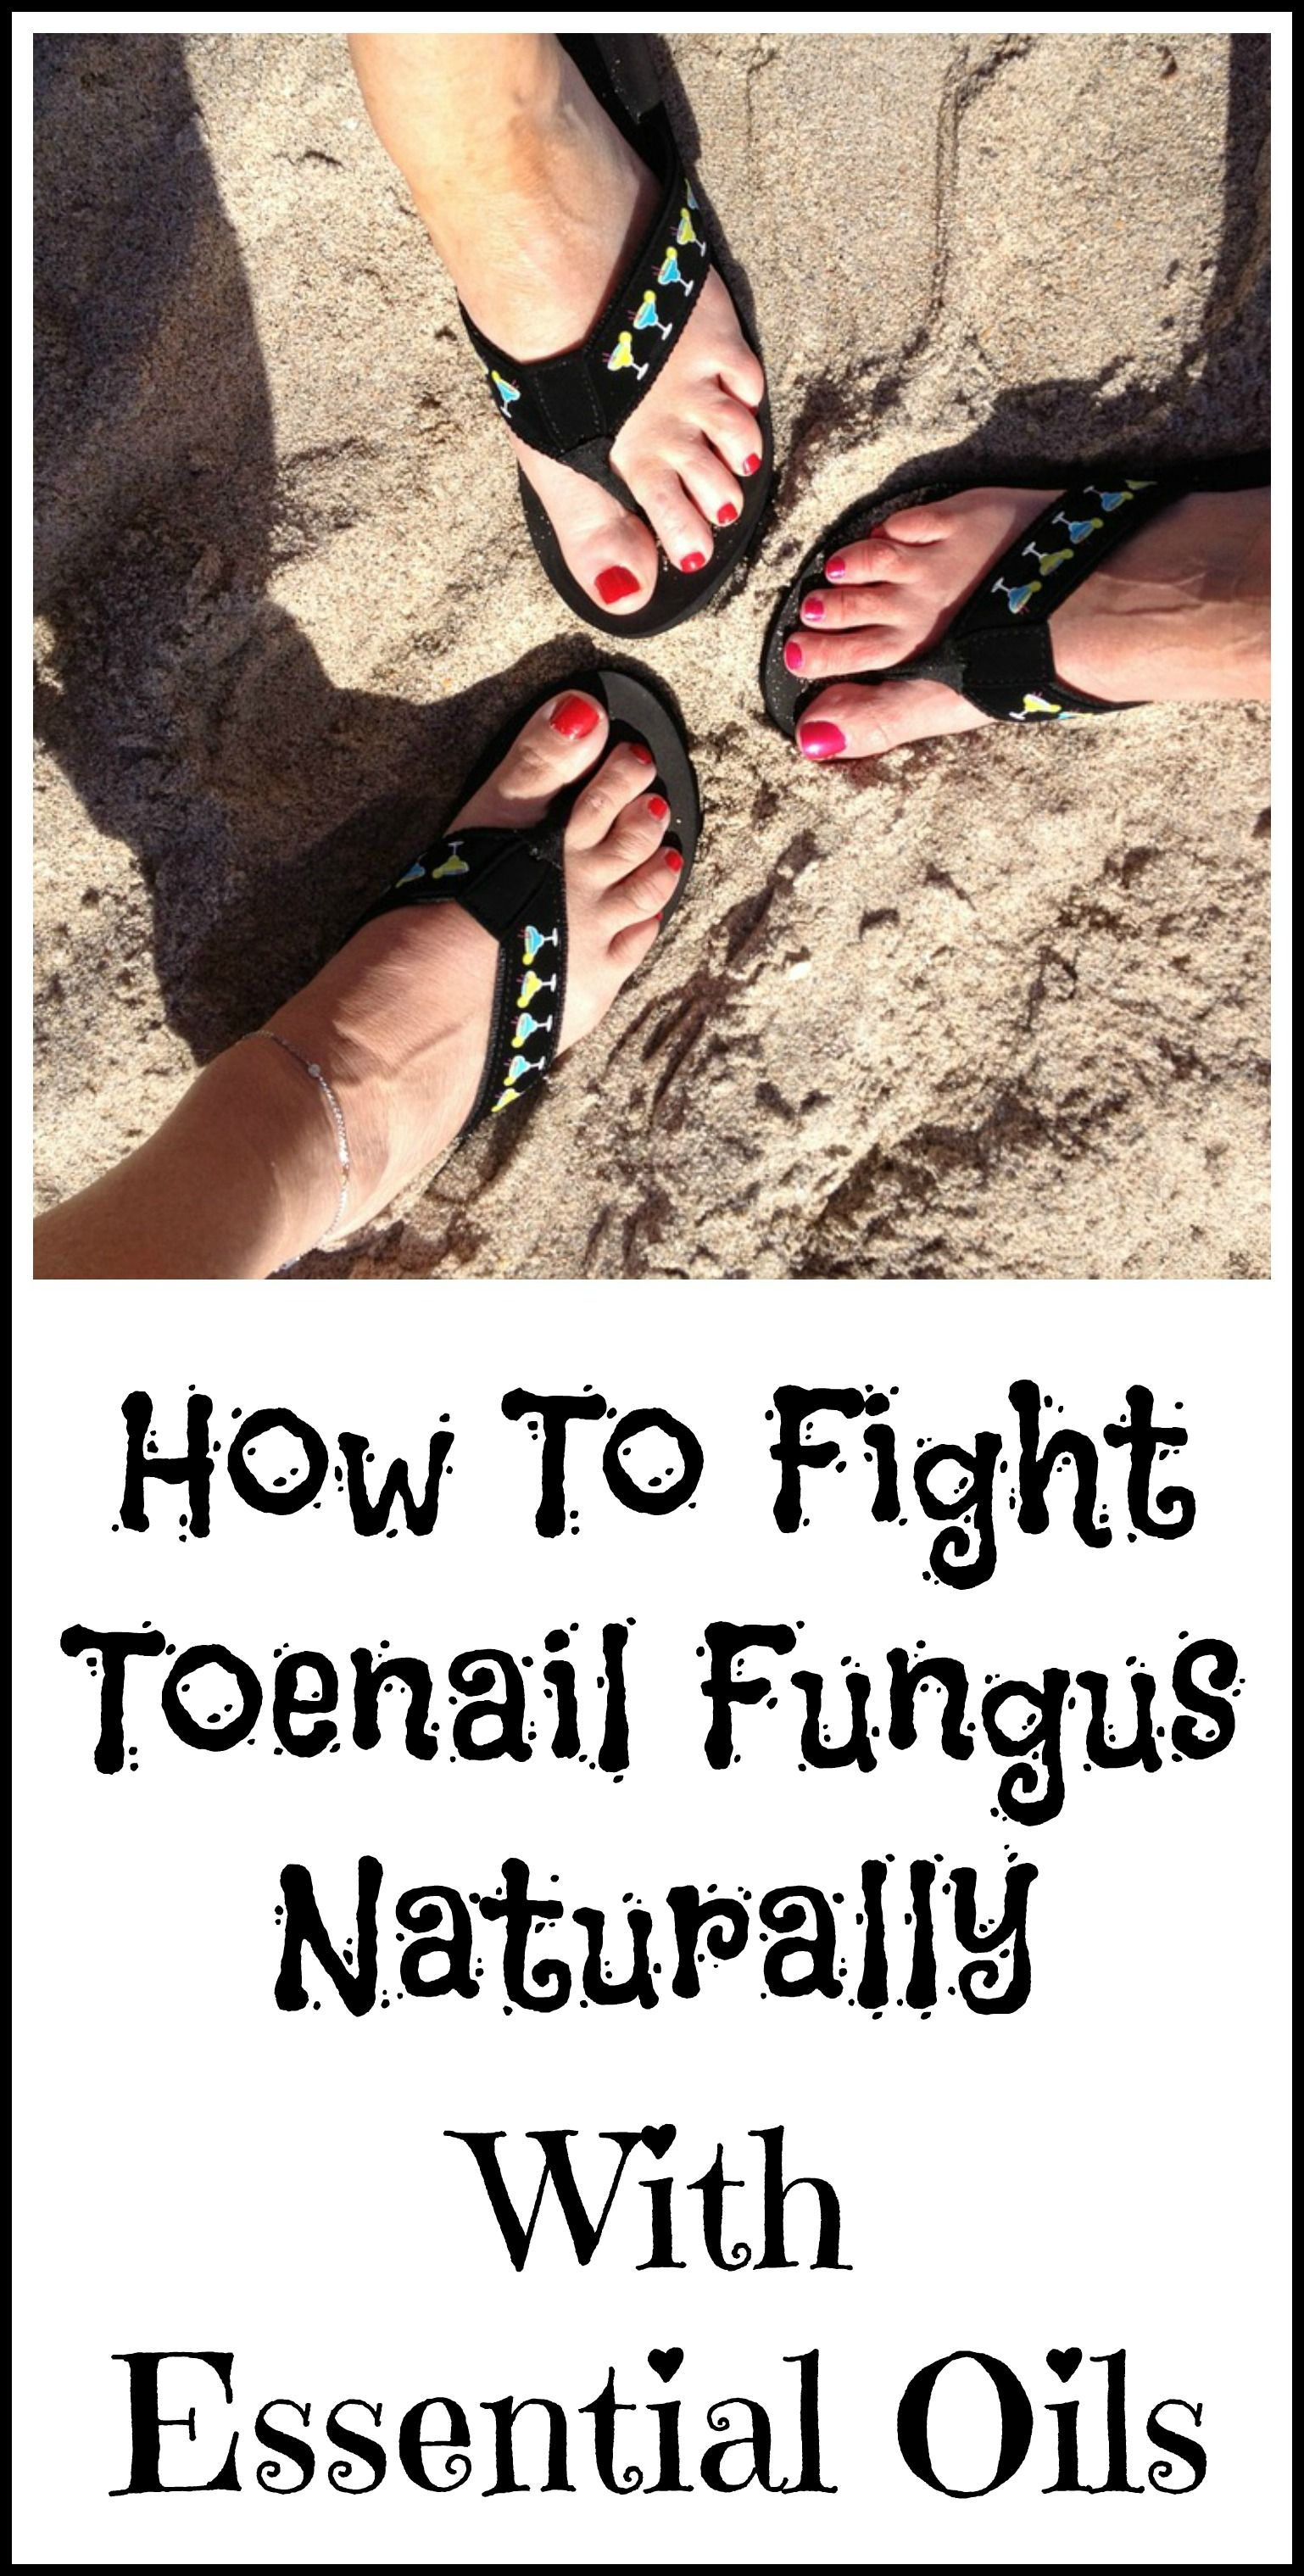 Essential Oils Good For Toenail Fungus Quot A Z About